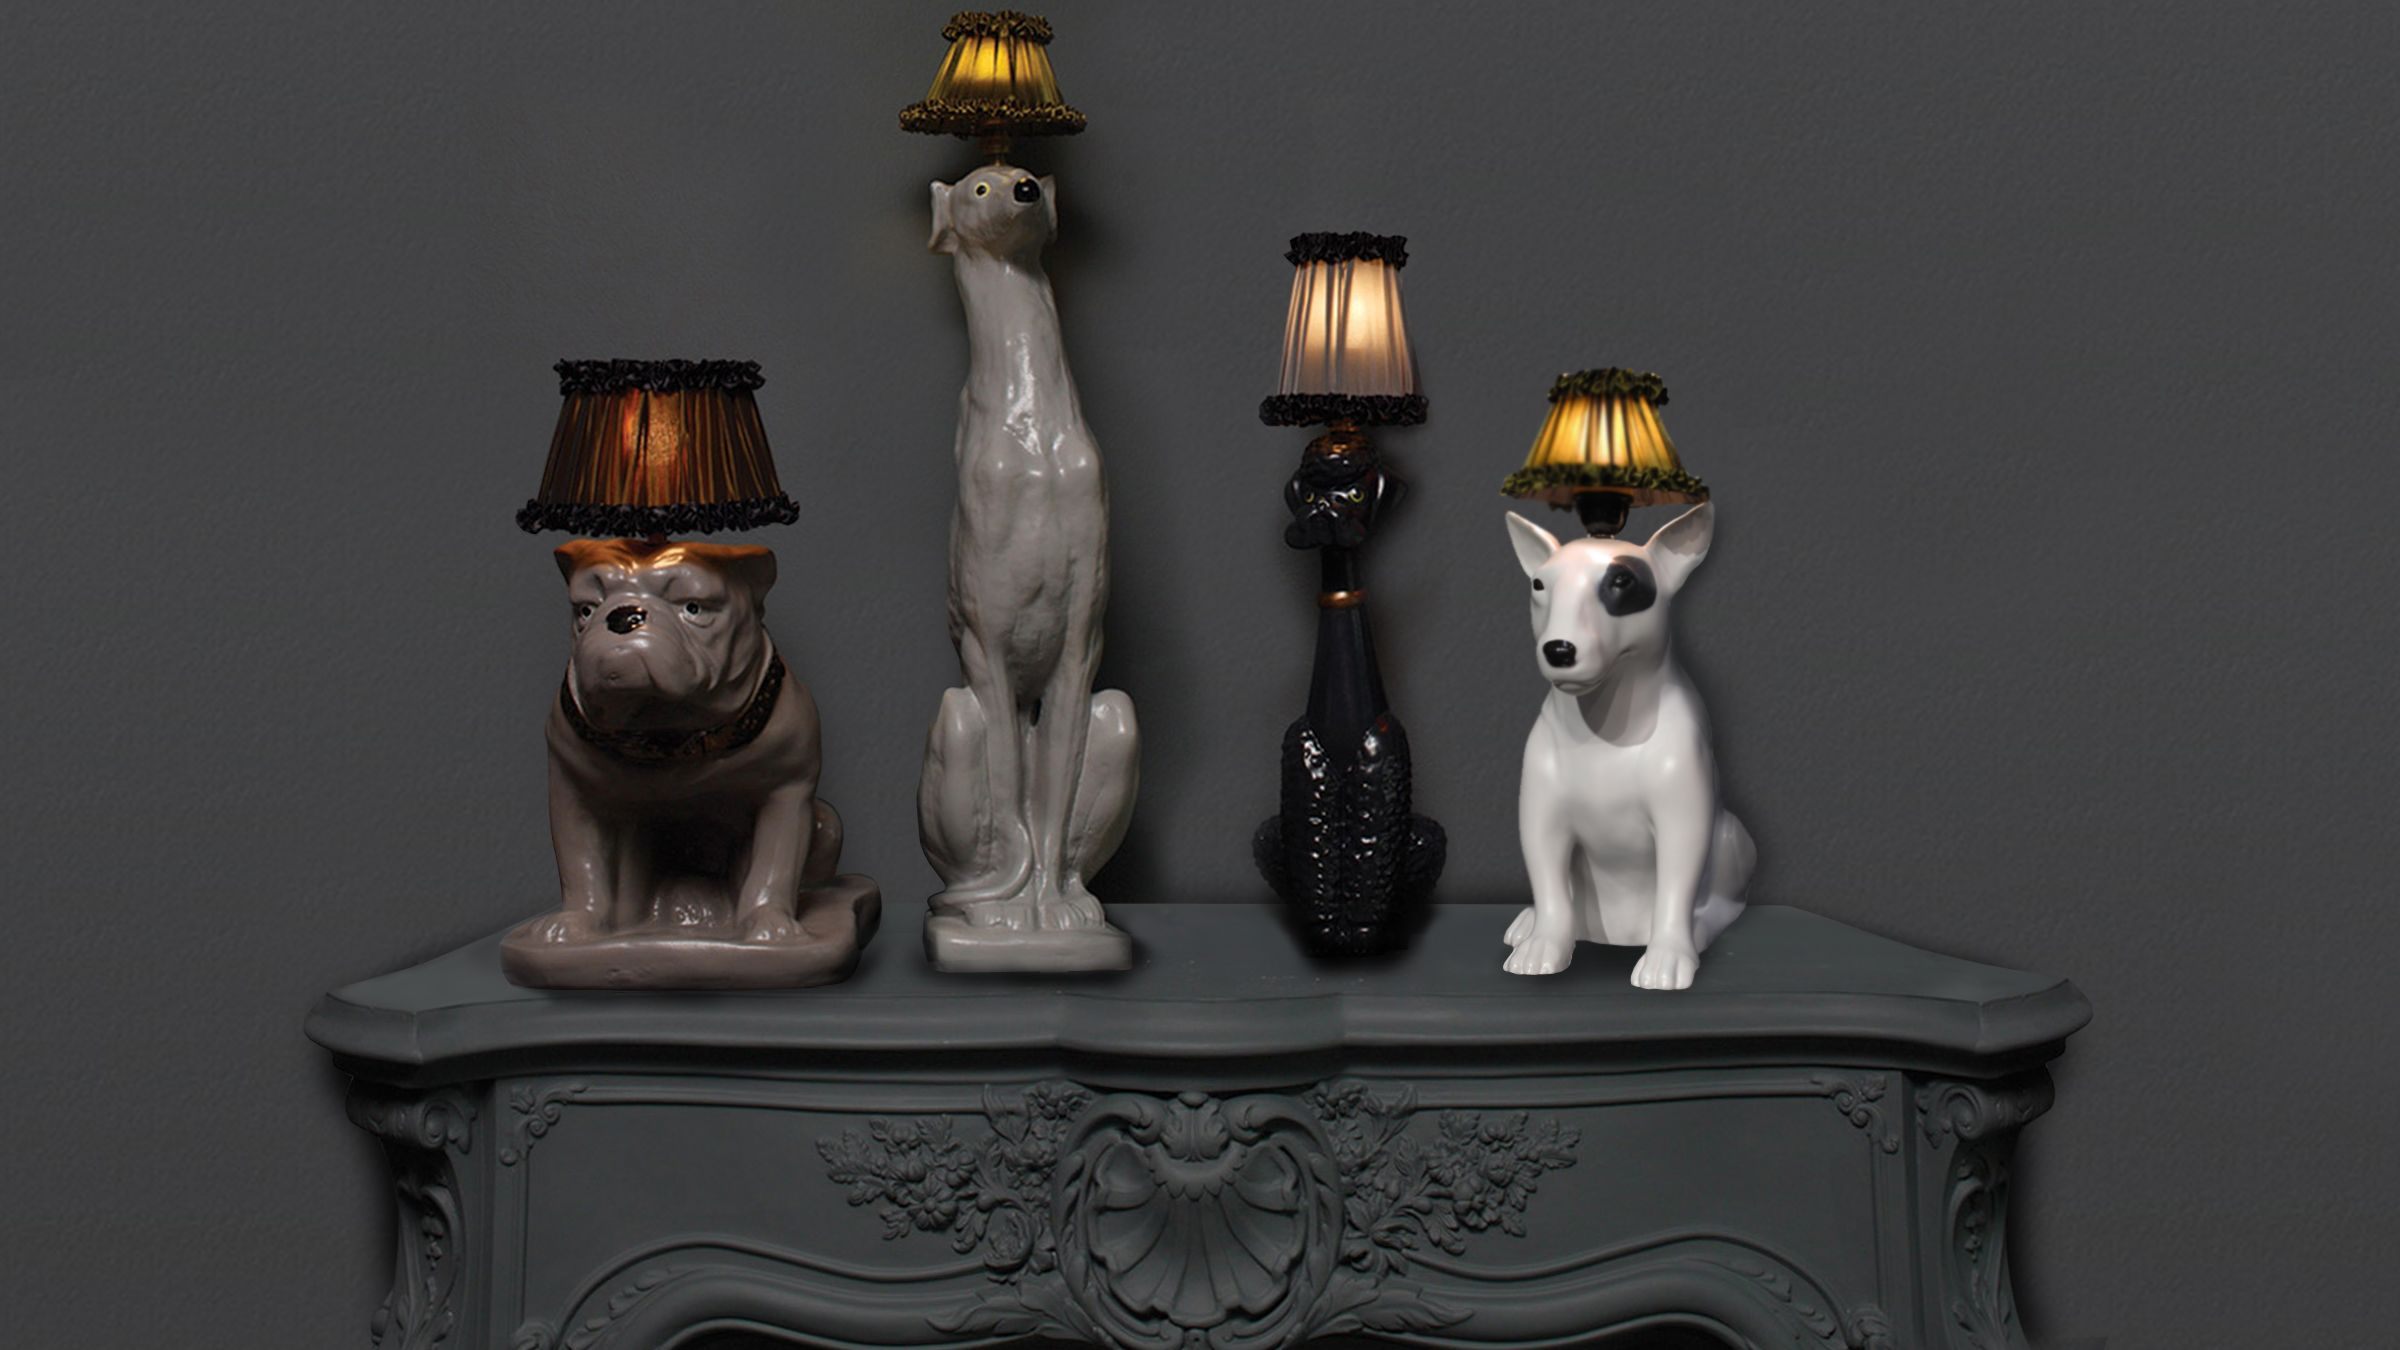 Lamps by abigail ahern i want them all home design lamps by abigail ahern i want them all geotapseo Images